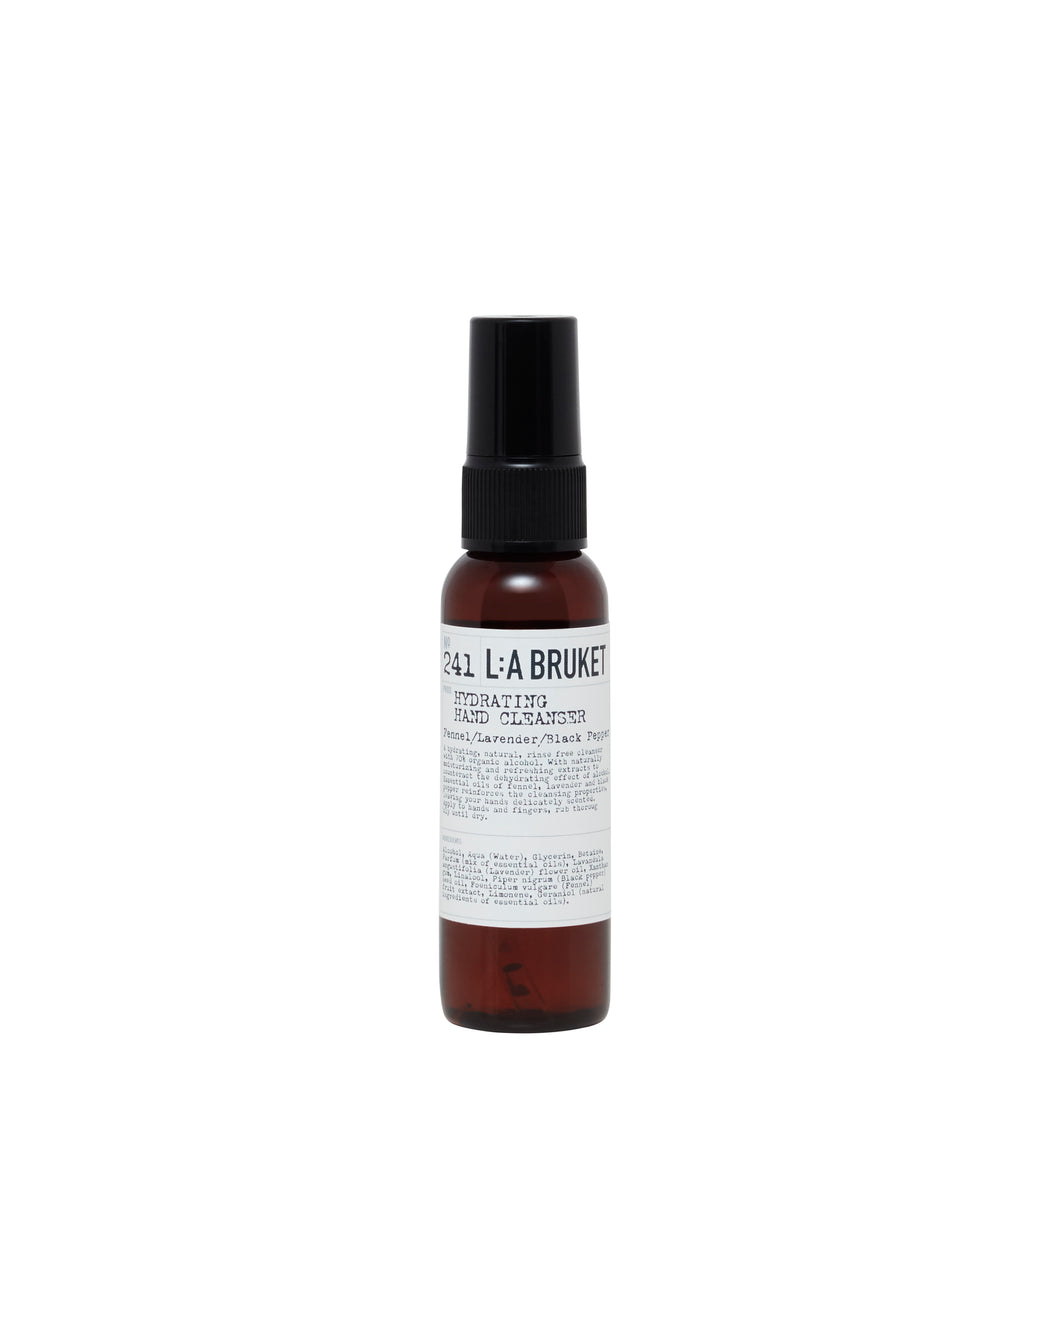 L:A BRUKET Hydrating Hand Cleanser No. 241